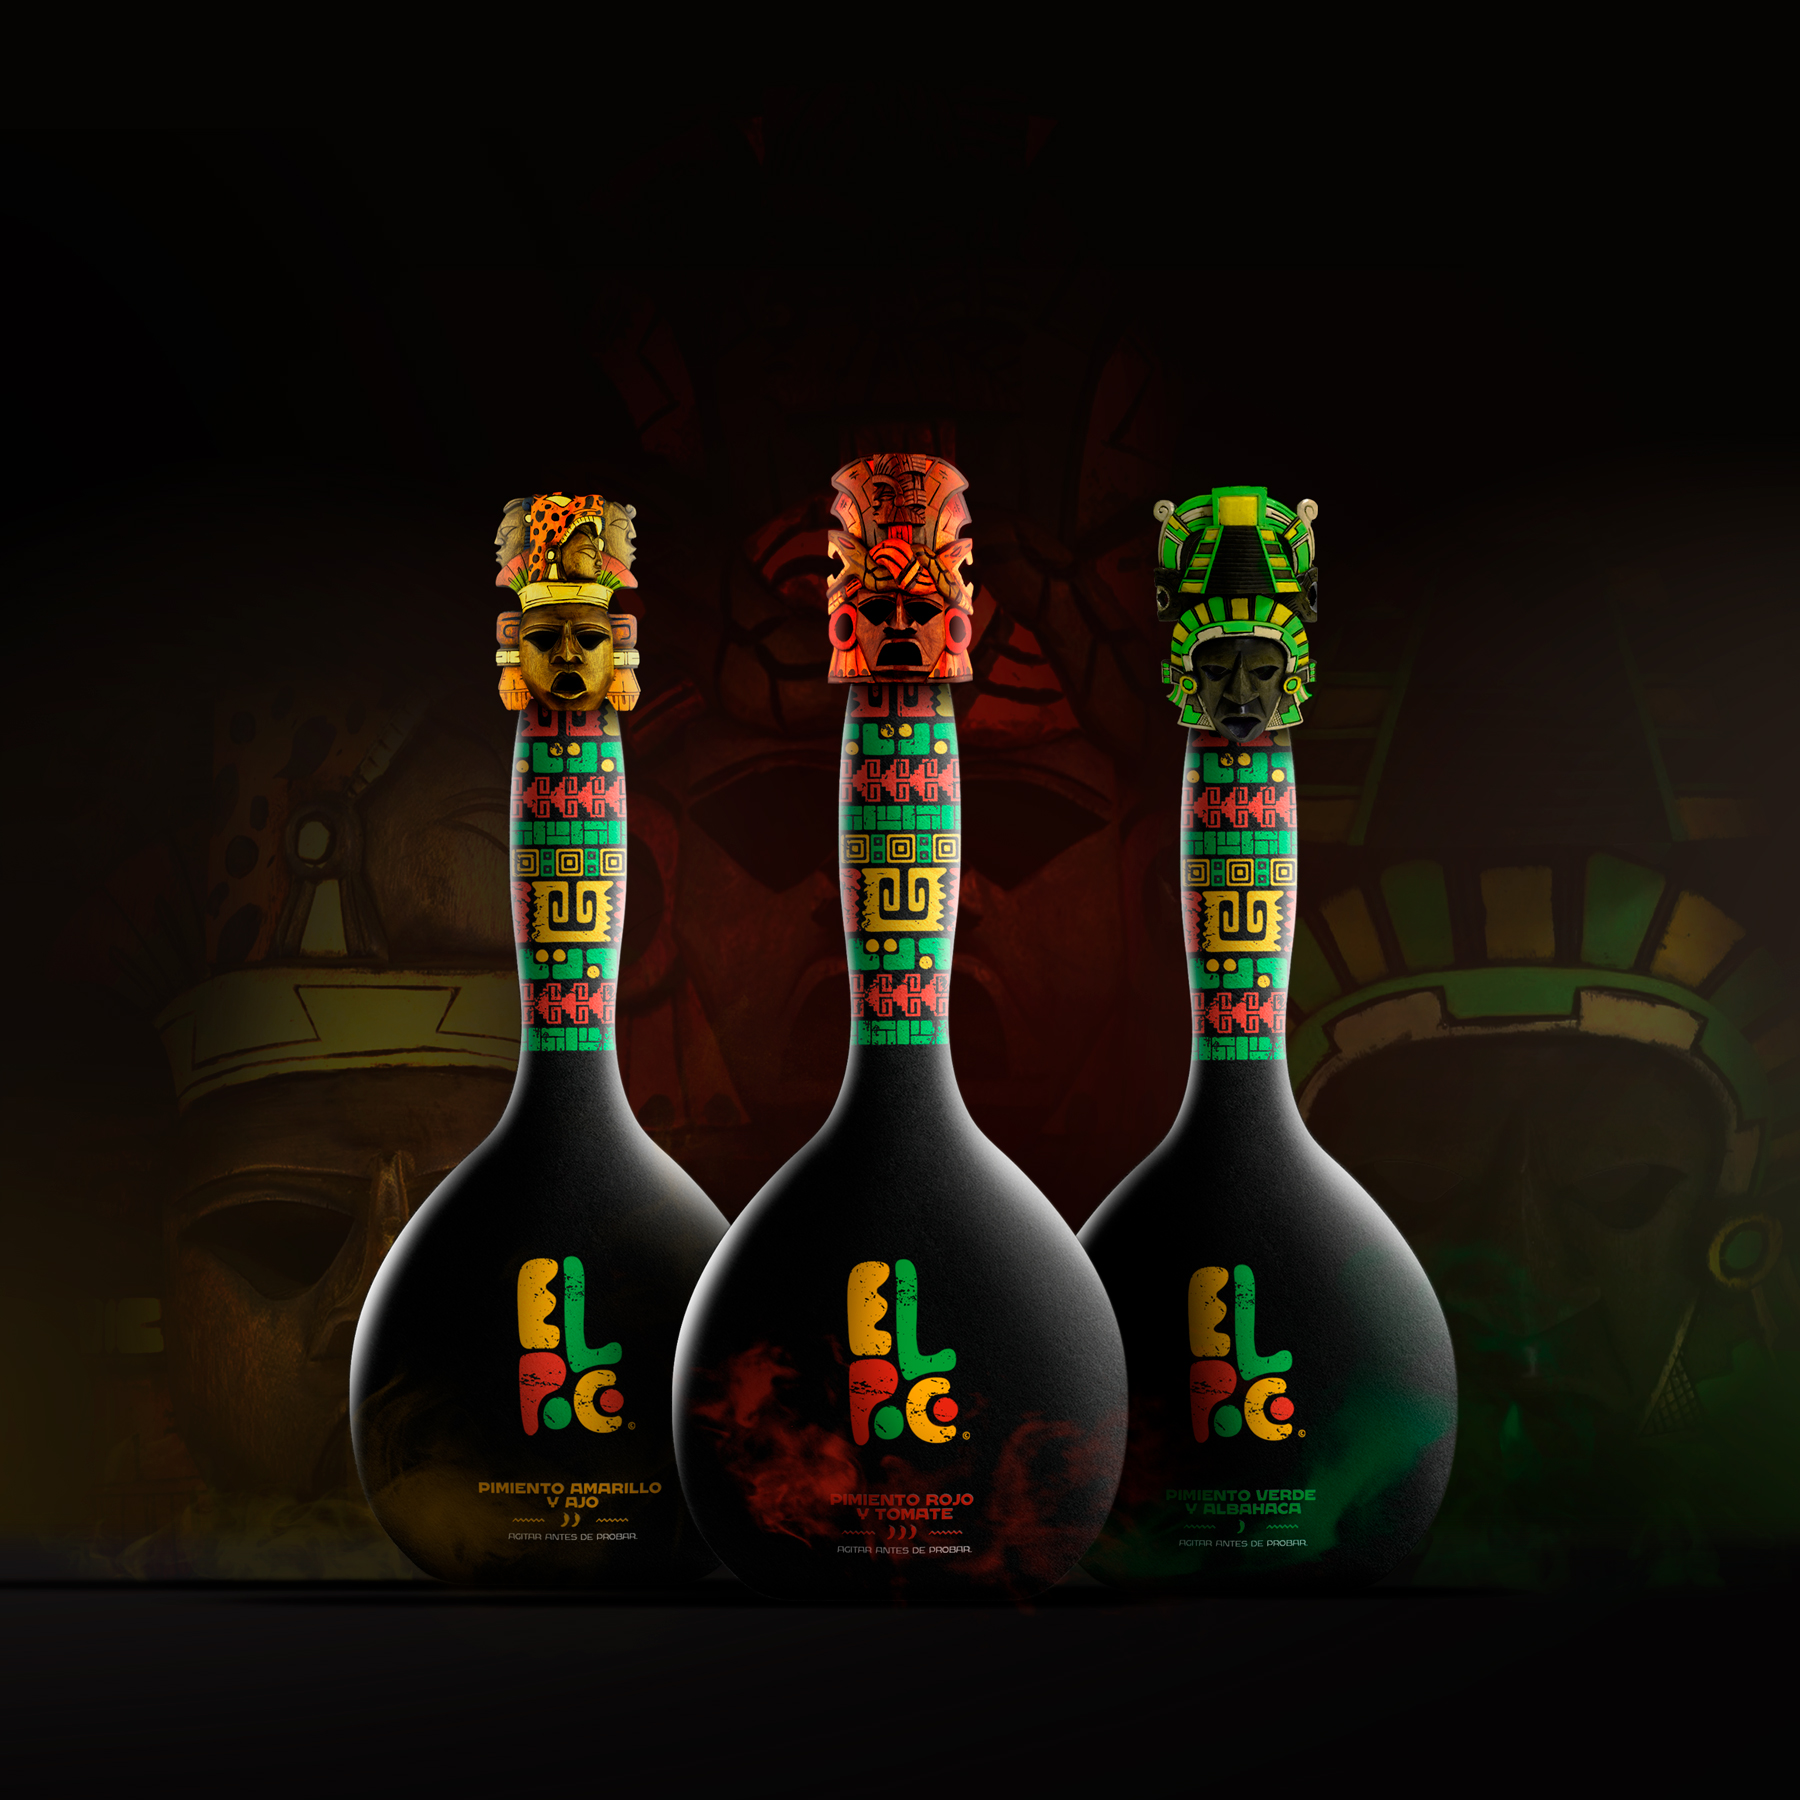 Packaging Design for El Poco New Mexican Hot Sauce Created by Hurtikonn